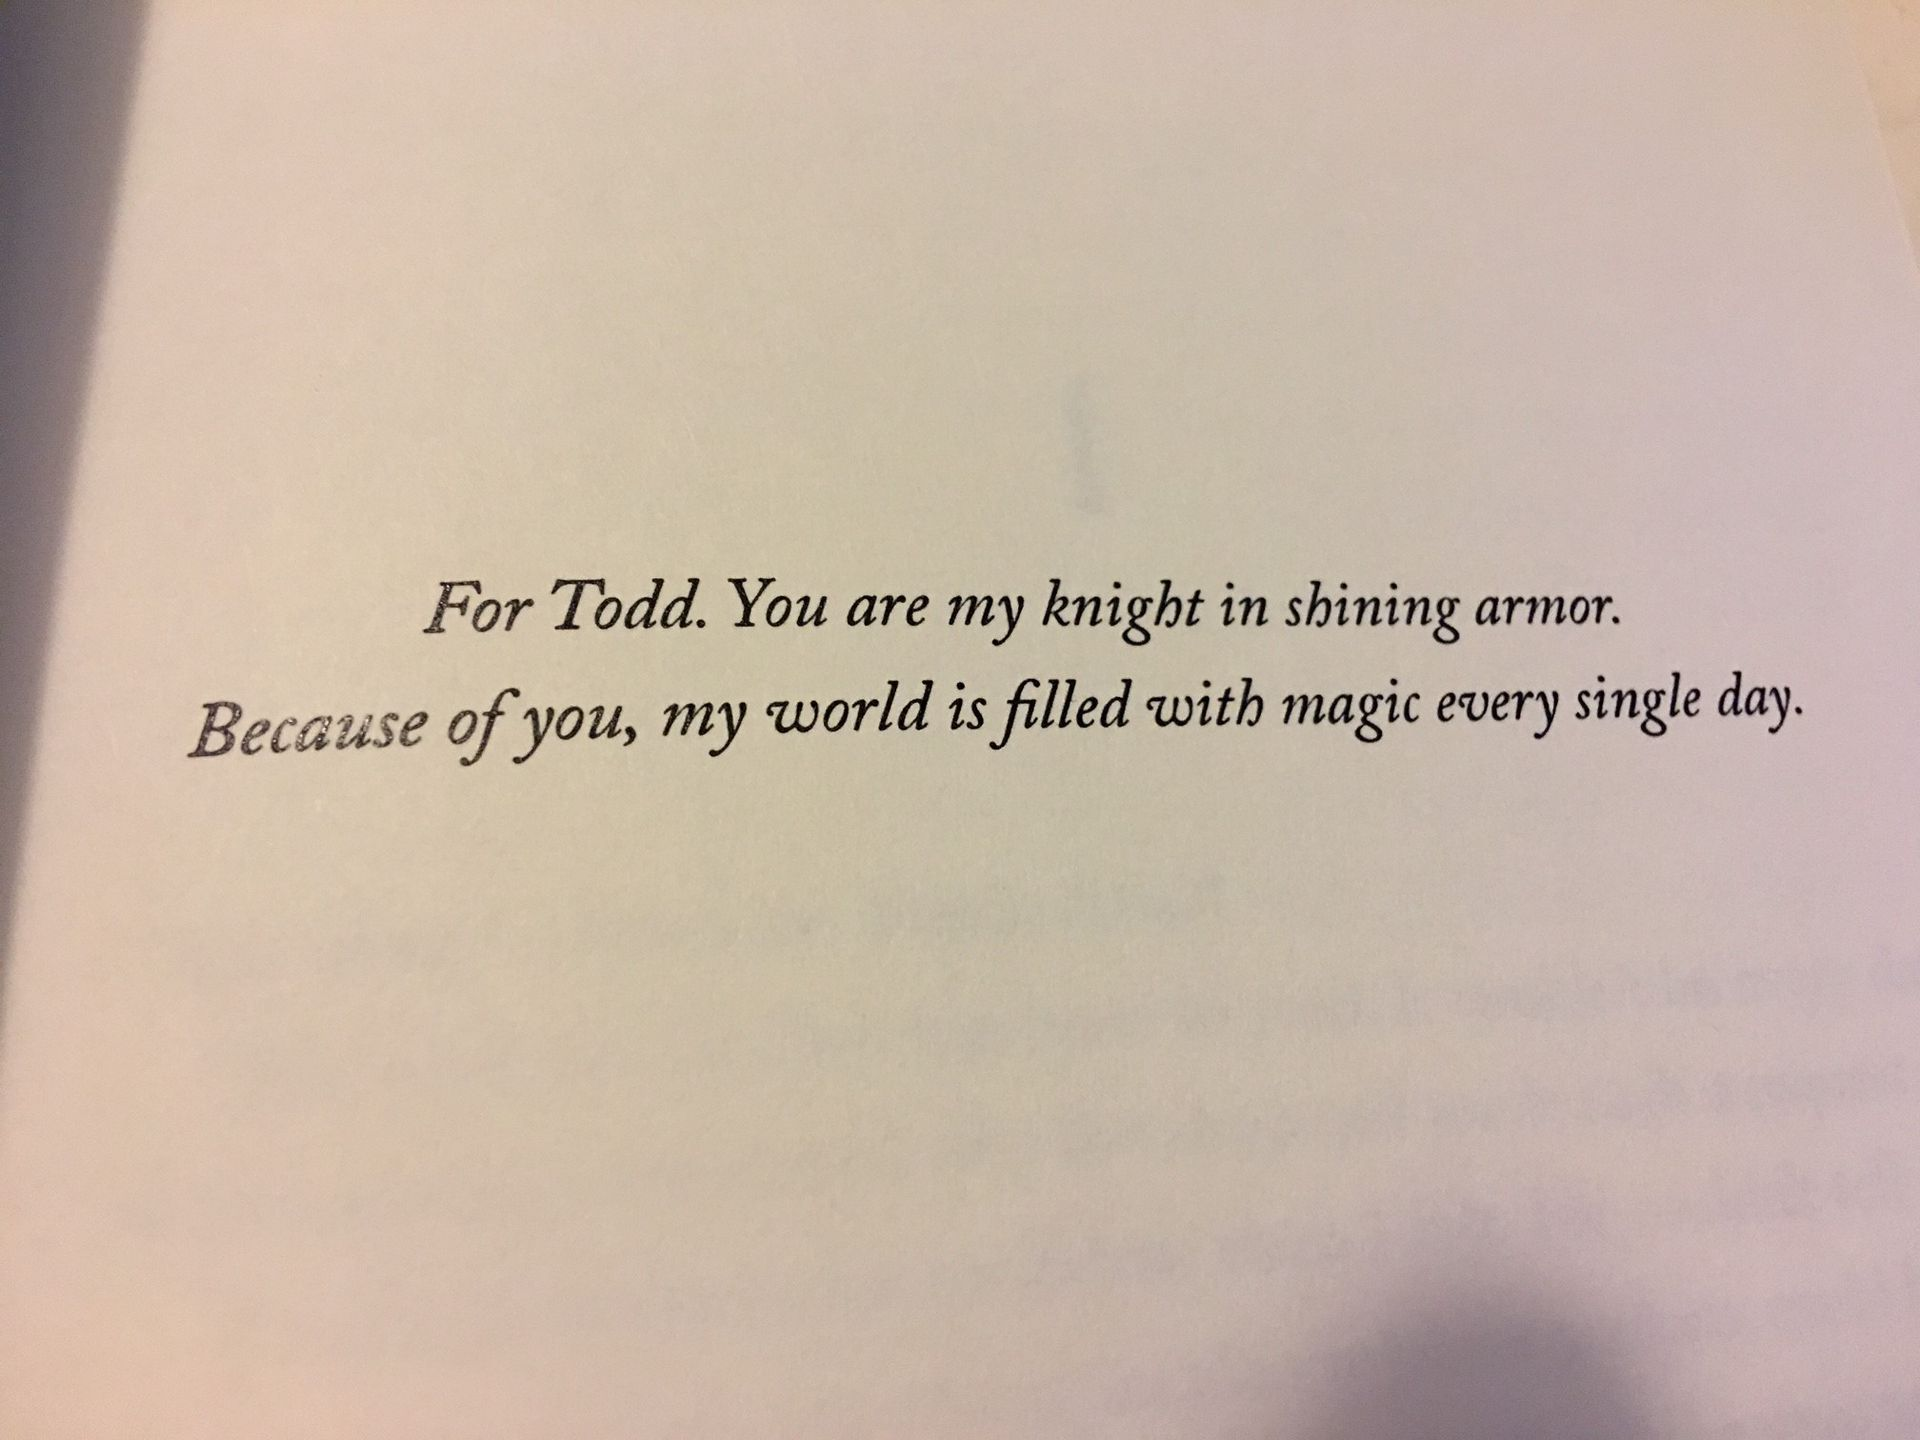 Book Dedication: